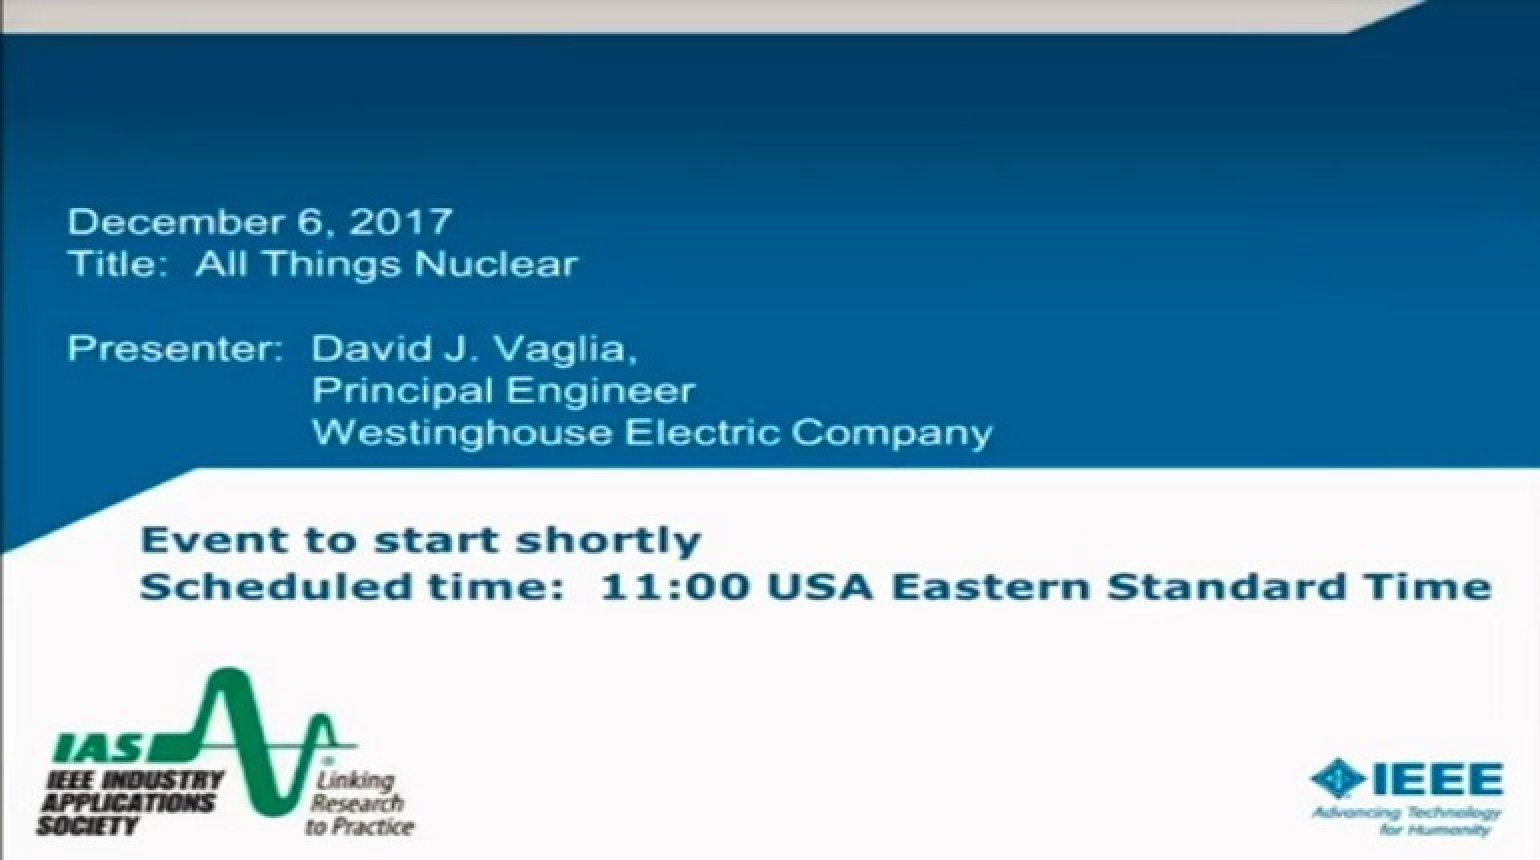 IAS Webinar Series - All Things Nuclear